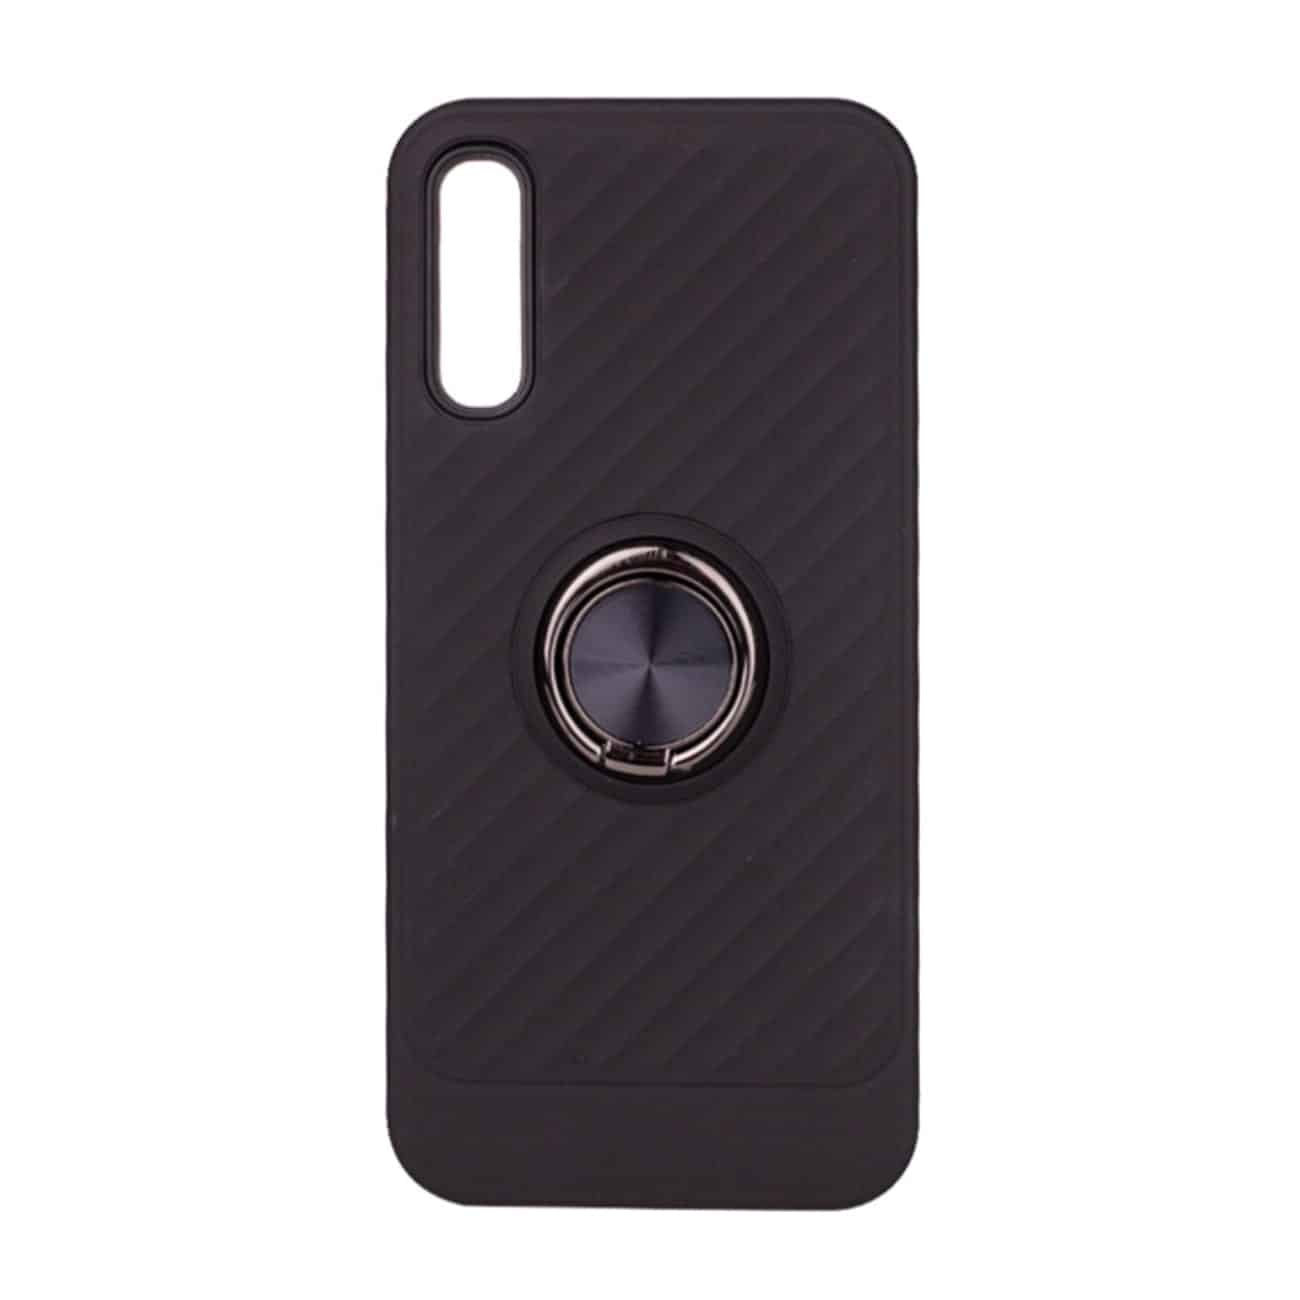 SAMSUNG GALAXY A70 Case with Ring Holder InBlack